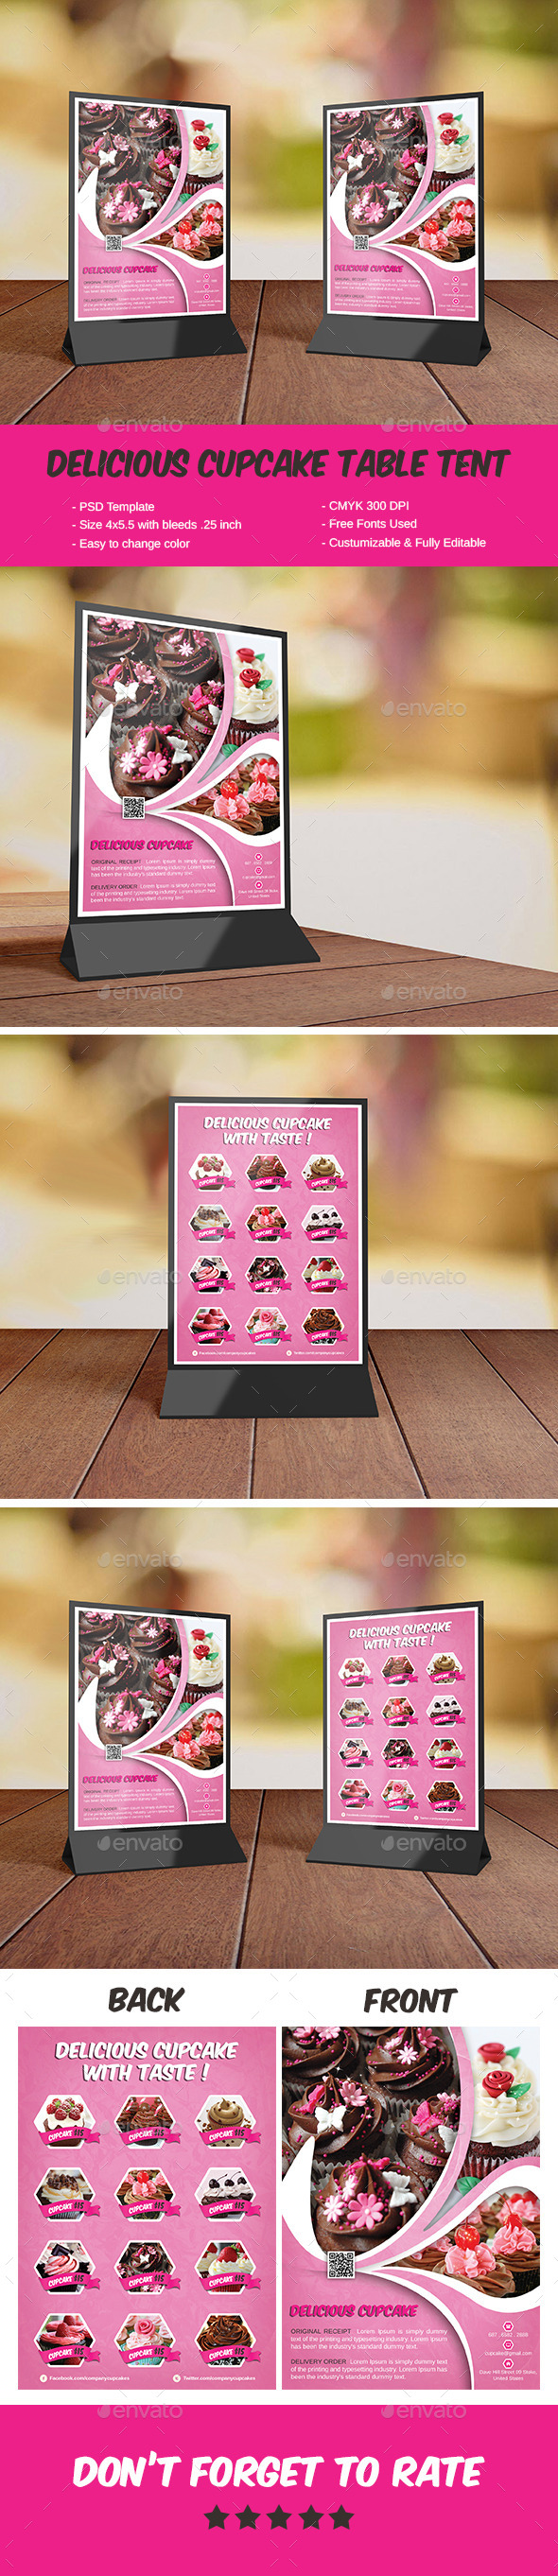 Delicious Cupcake Table Tent